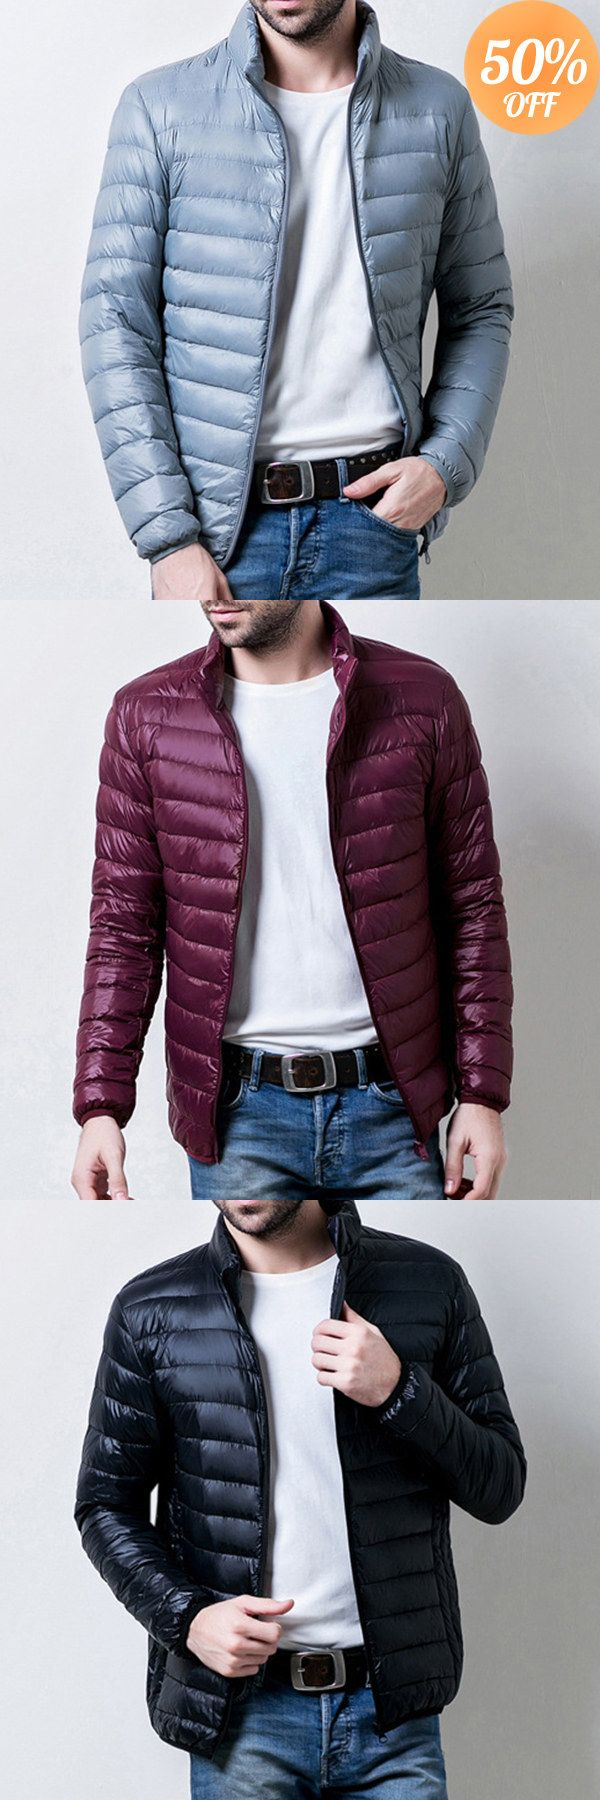 Winter Casual Warm Jackets. 5 Colors Available. Fall in love with its unique design.